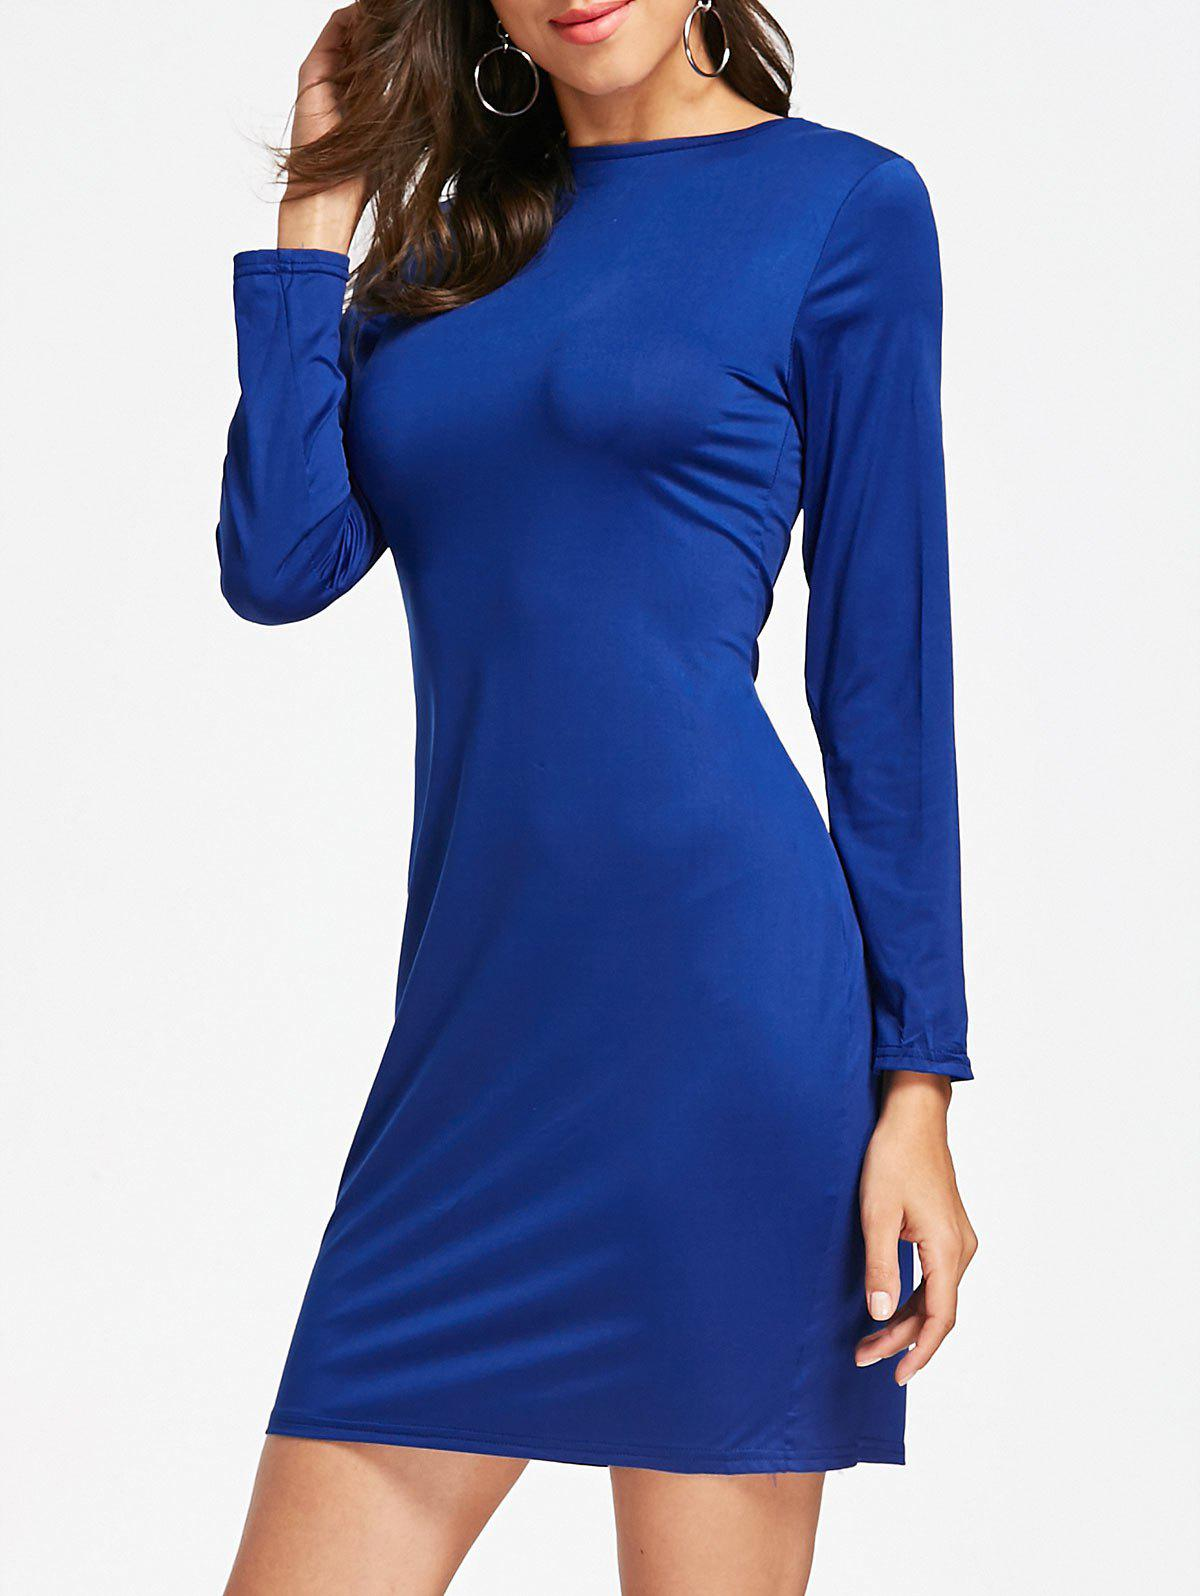 Long Sleeve Full Zip Pencil Dress - BLUE S